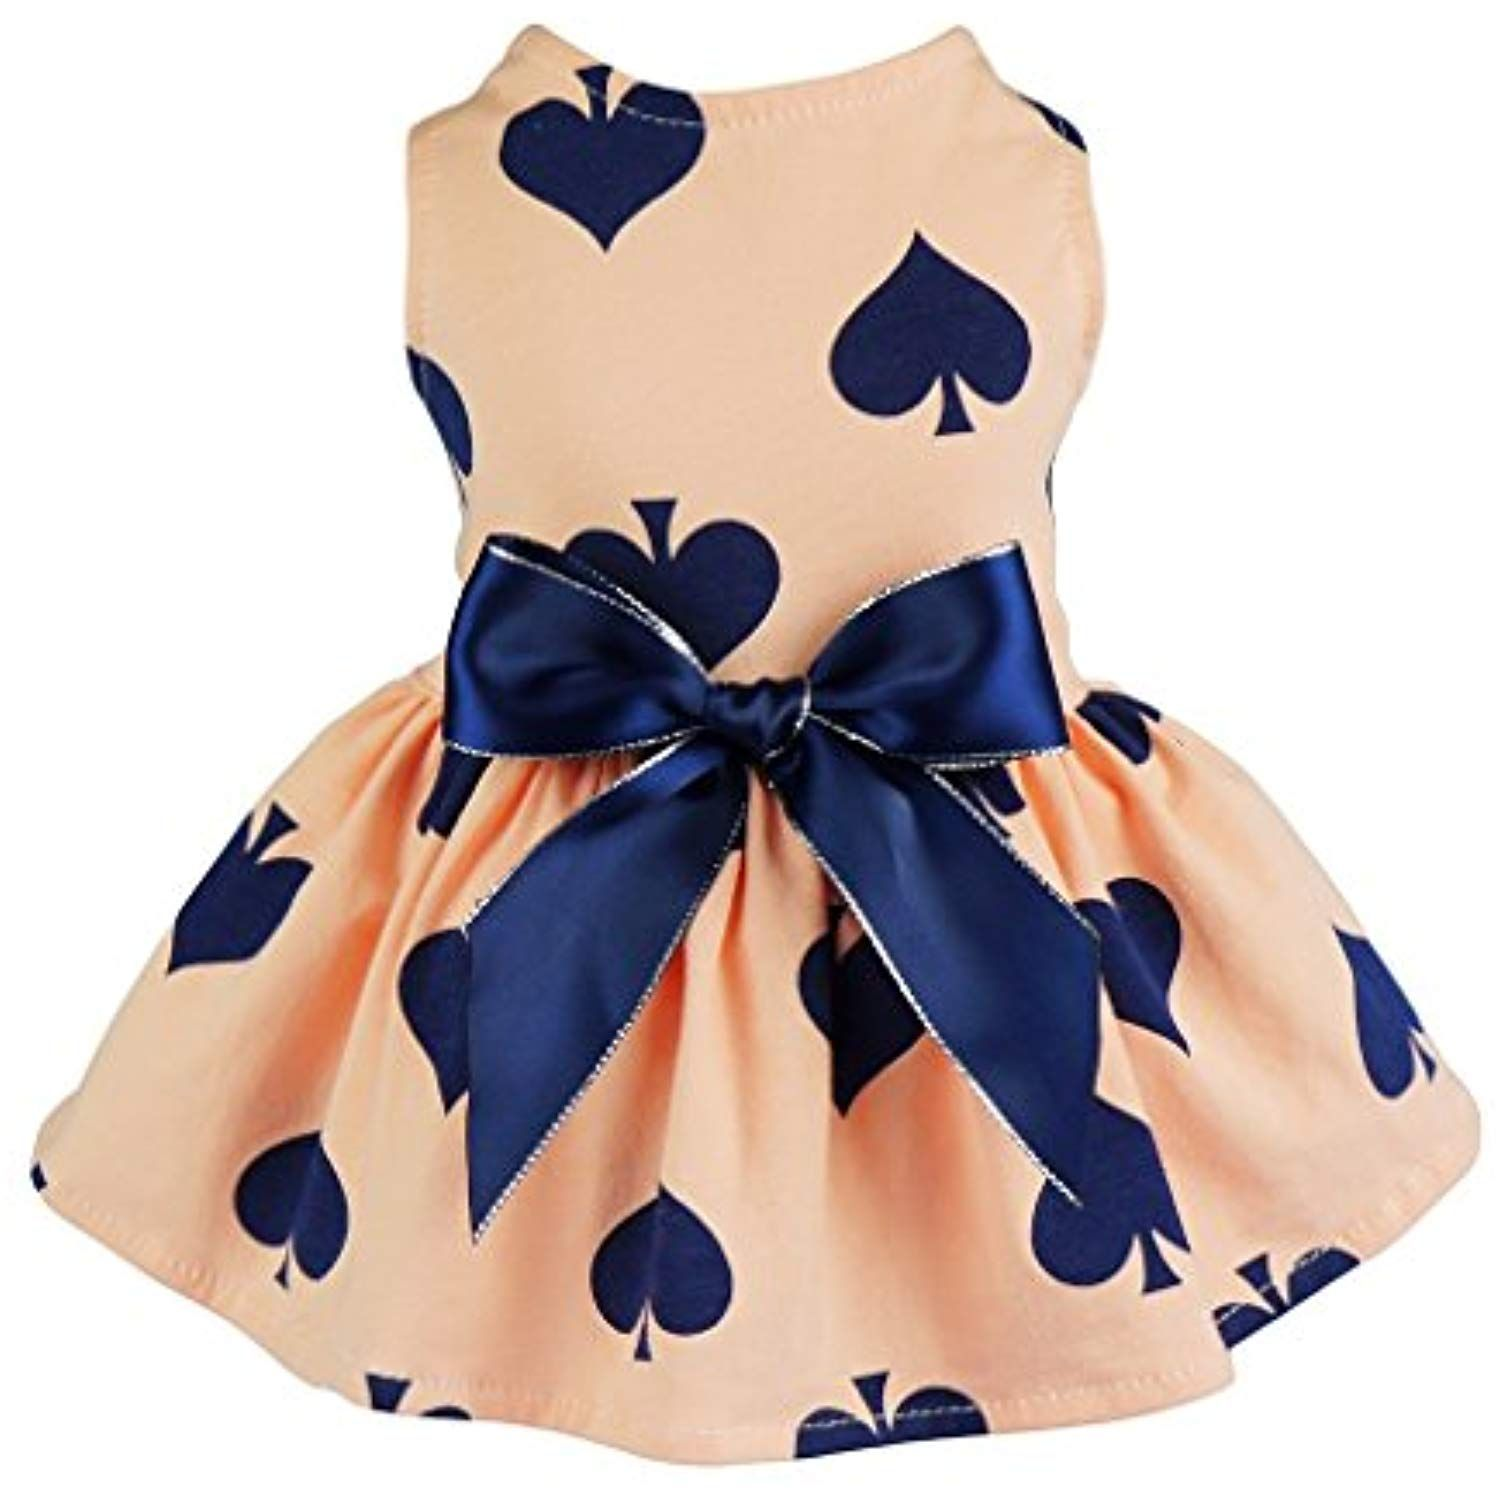 5f040f4b3deb Fitwarm Sweetie Ribbon Pet Clothes Dog Dress Vest Shirts Sundress, Medium  >>> Find out more about the great product at the image link.